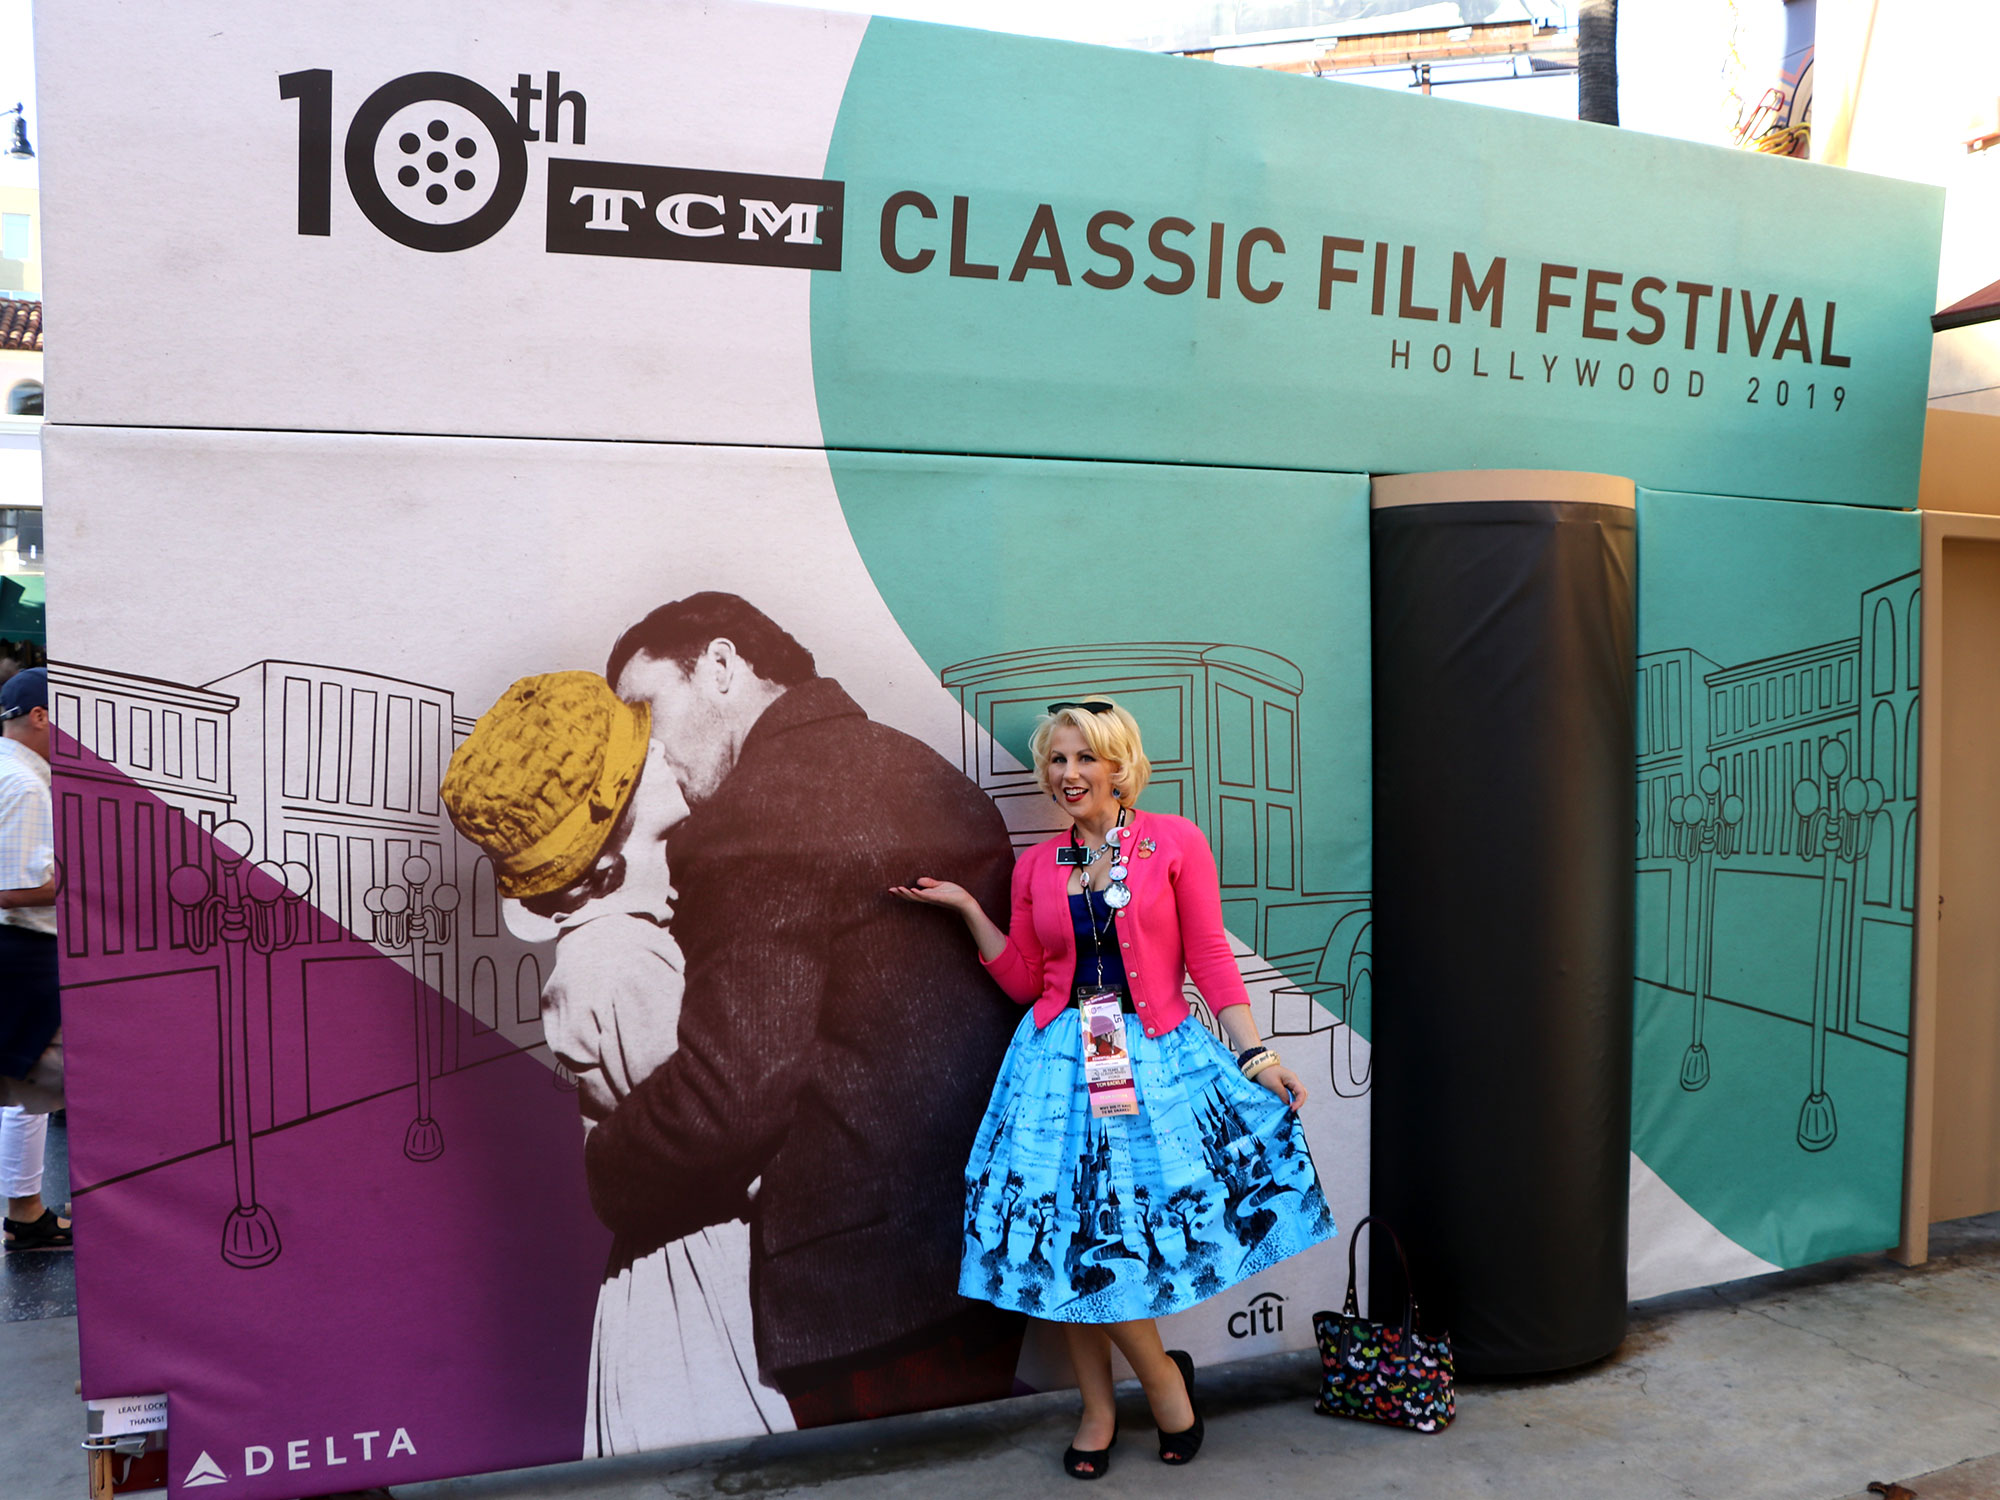 Reconnecting with Hollywood's past at the 10th TCM Classic Film Festival